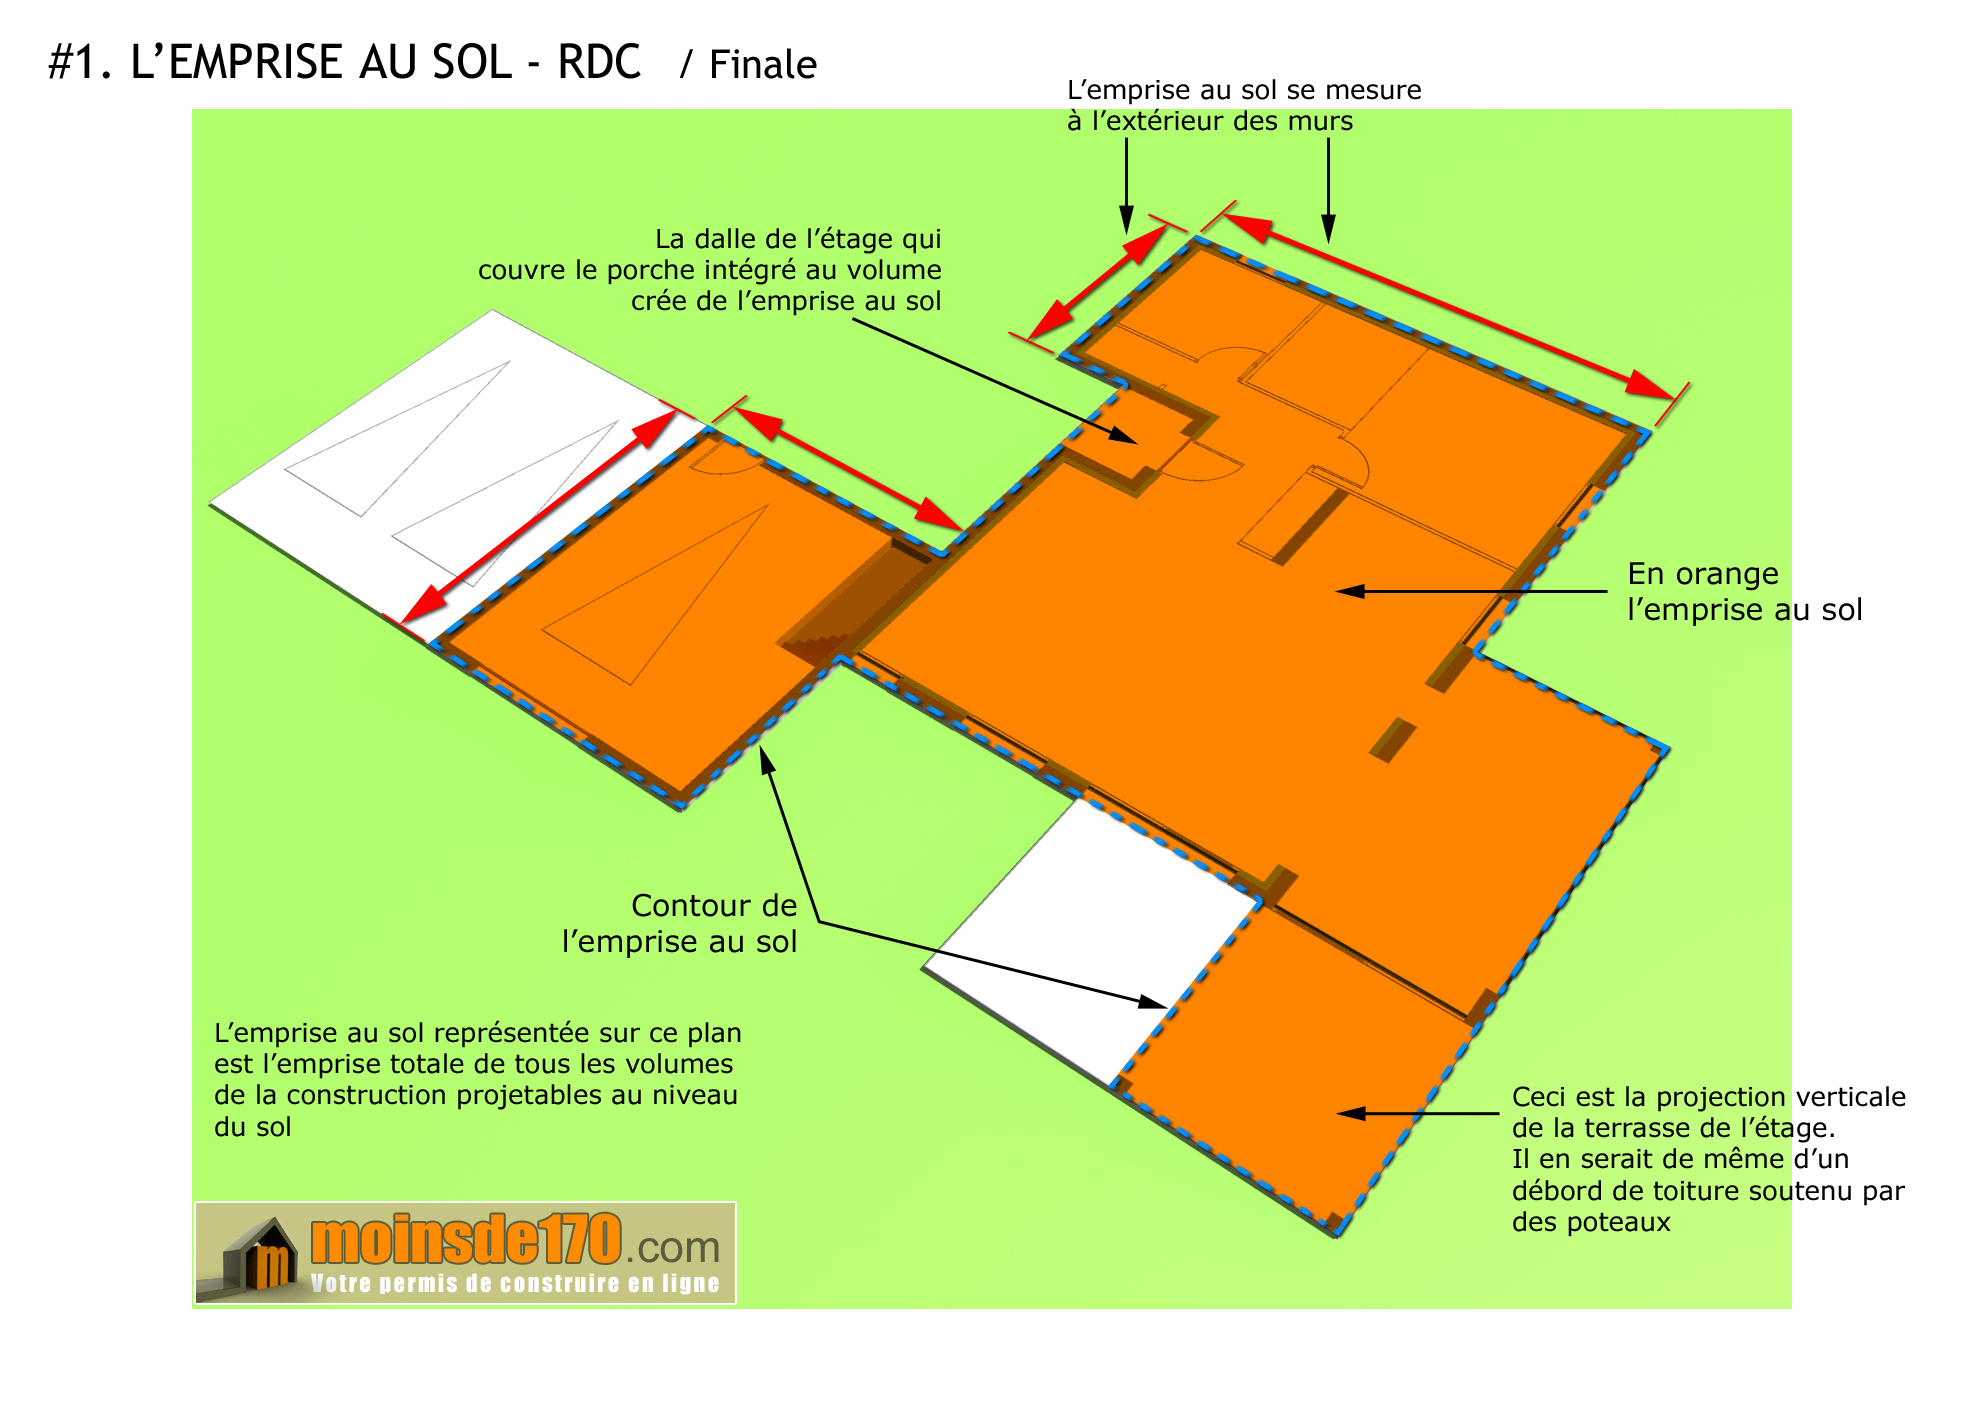 emprise au sol finale dune construction - Comment Calculer Surface Habitable Maison